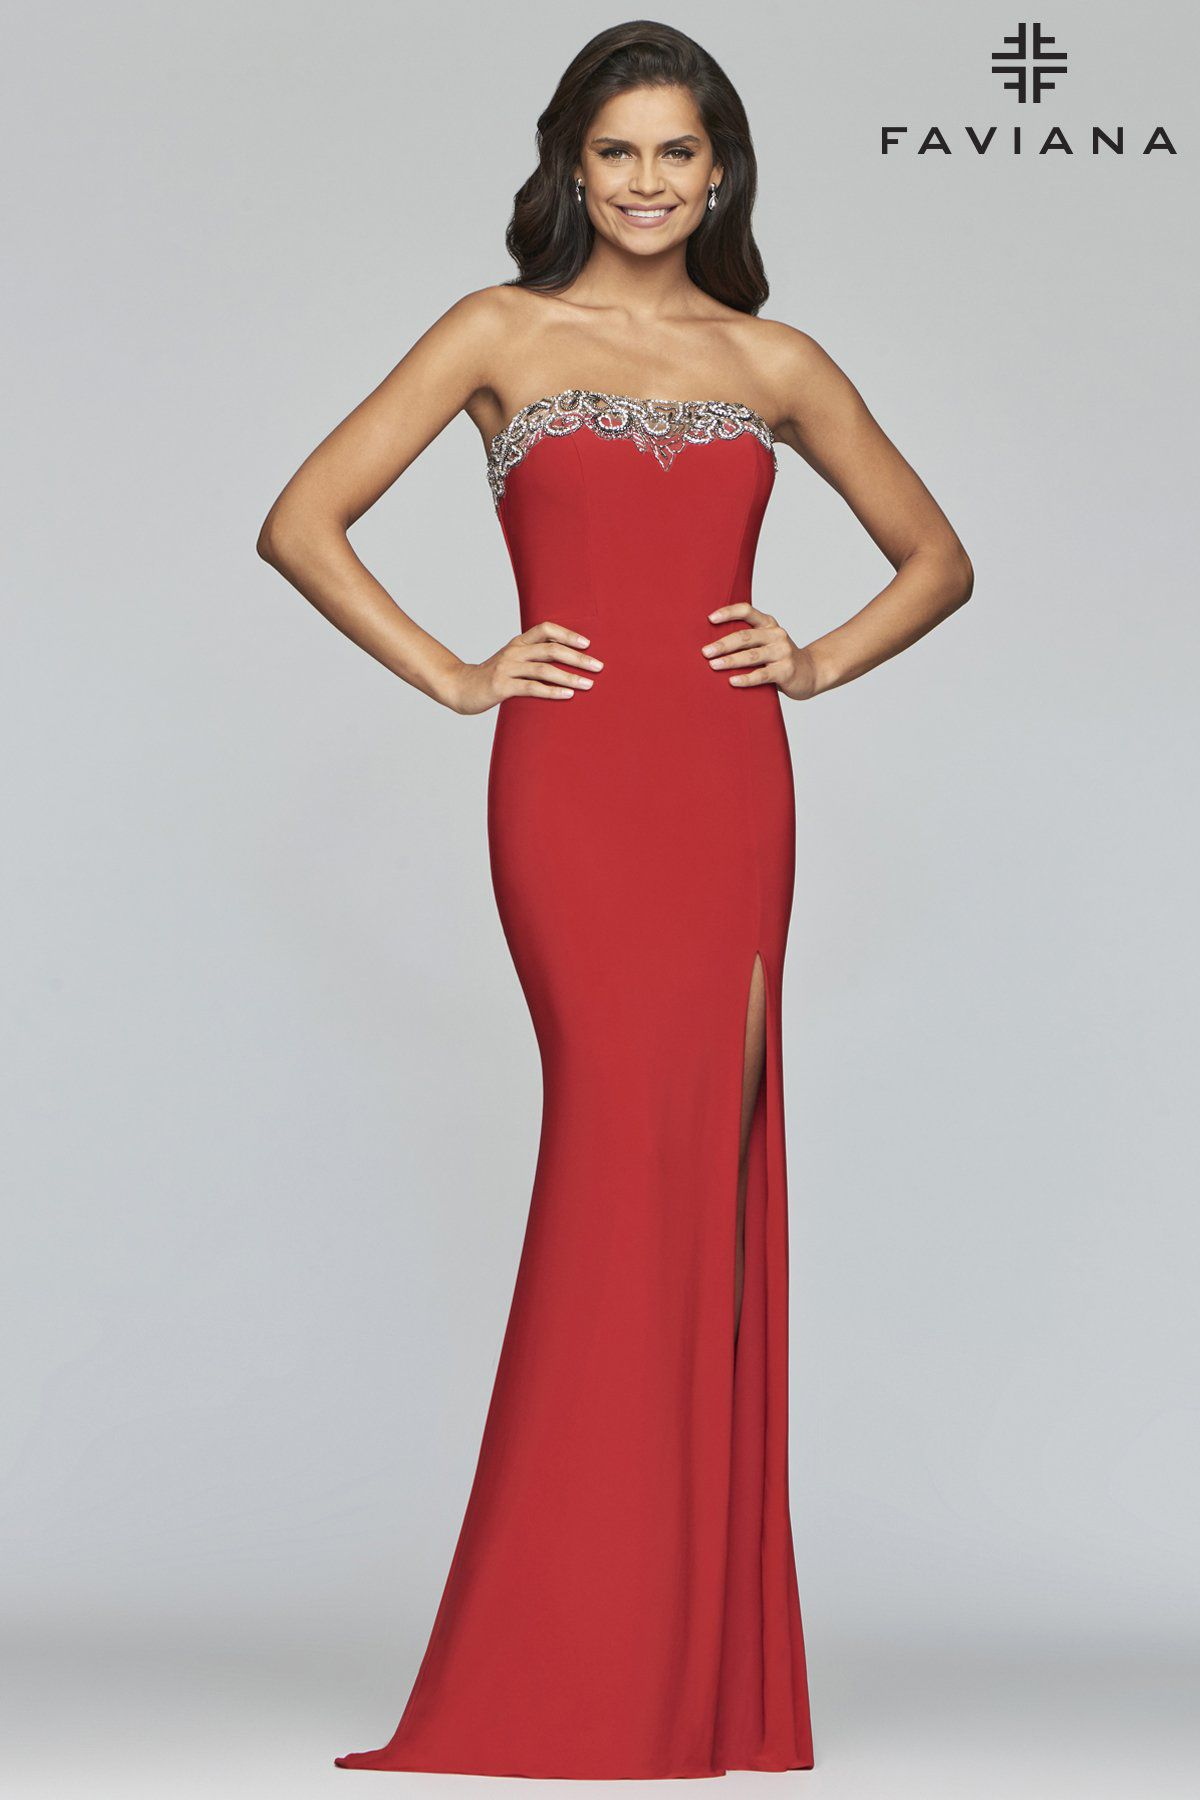 Style S10200 Faviana Red Size 6 Prom Tall Height Mermaid Dress on Queenly